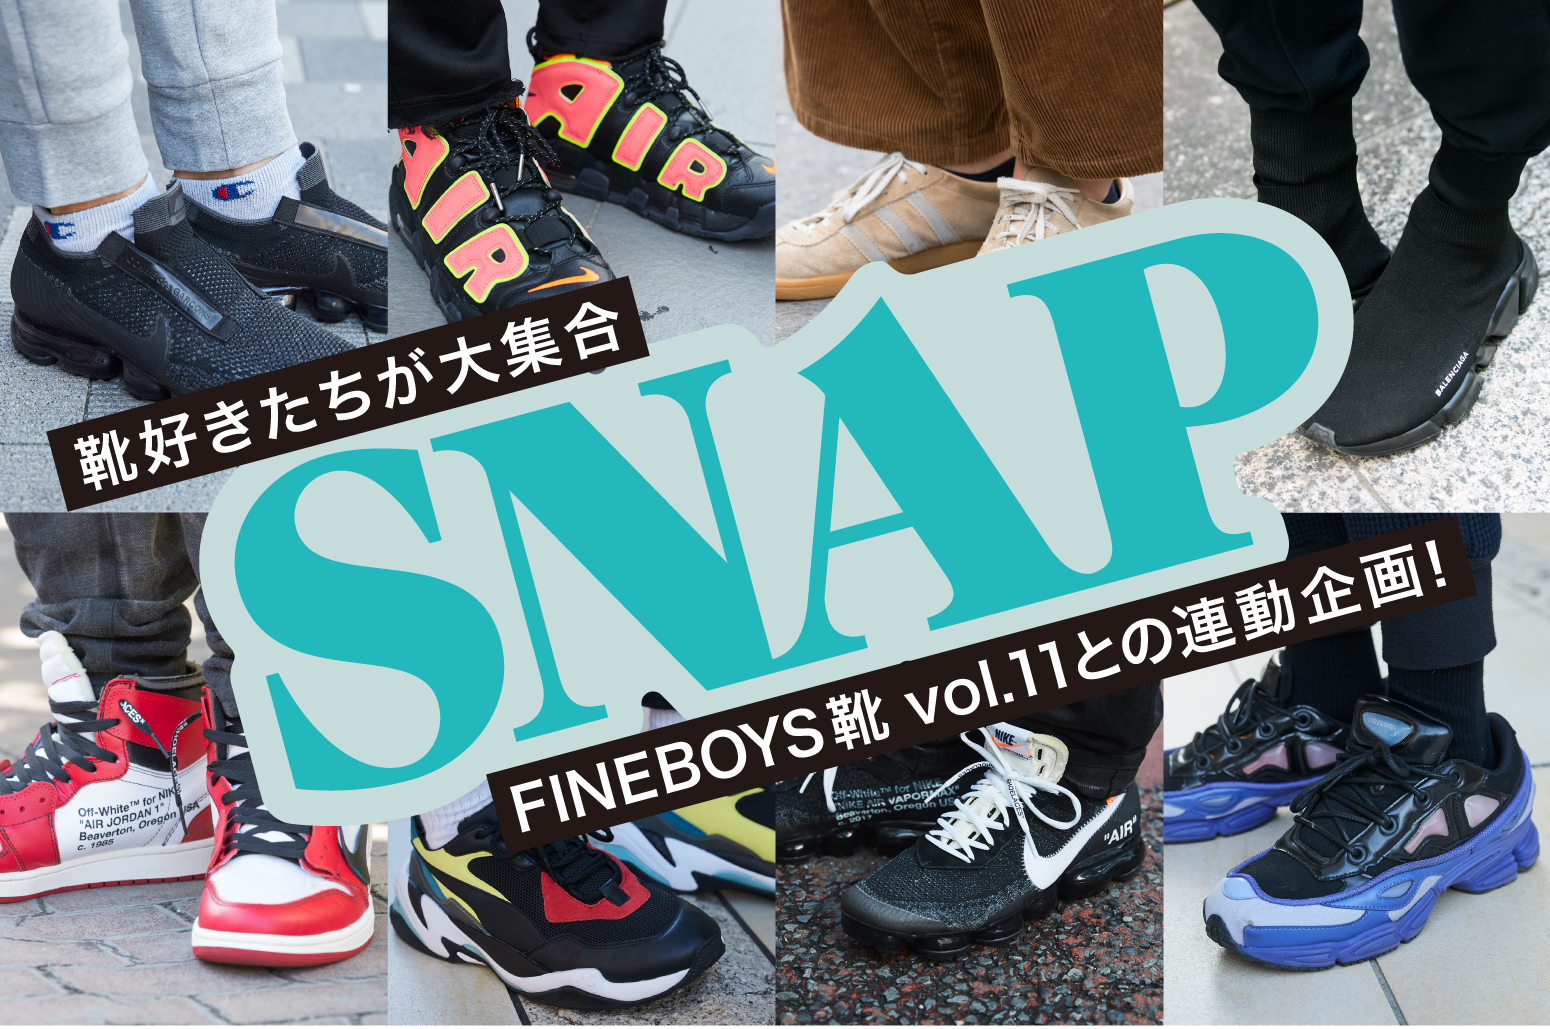 https://fineboys-online.jp/thegear/content/theme/img/org/article/556/main.jpg?t=1536757269